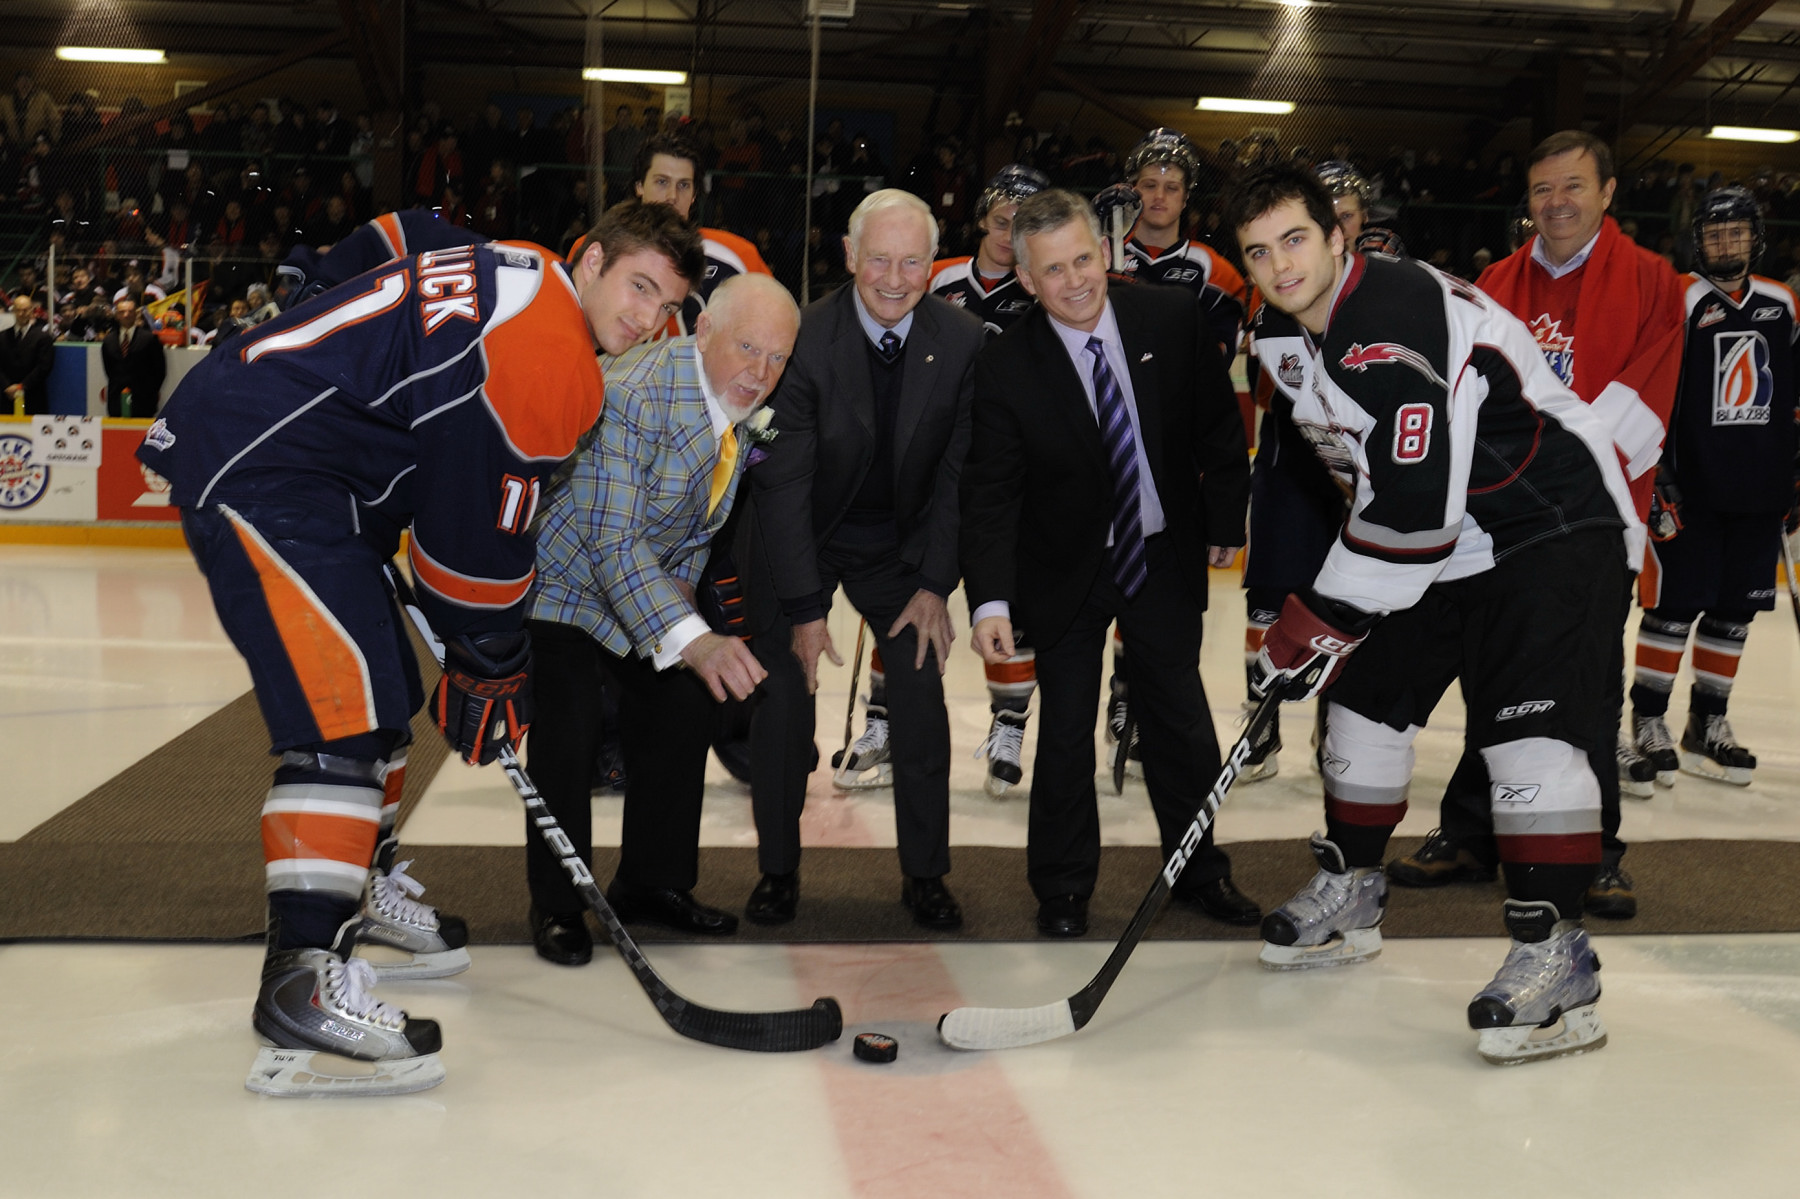 At the official ceremony for Hockey Day in Canada, the Governor General along with Don Cherry (left) and Ron Robison (right), Commissioner of the Western Hockey League, did the official puck-drop at the game between the Vancouver Giants and the Kamloops Blazers.